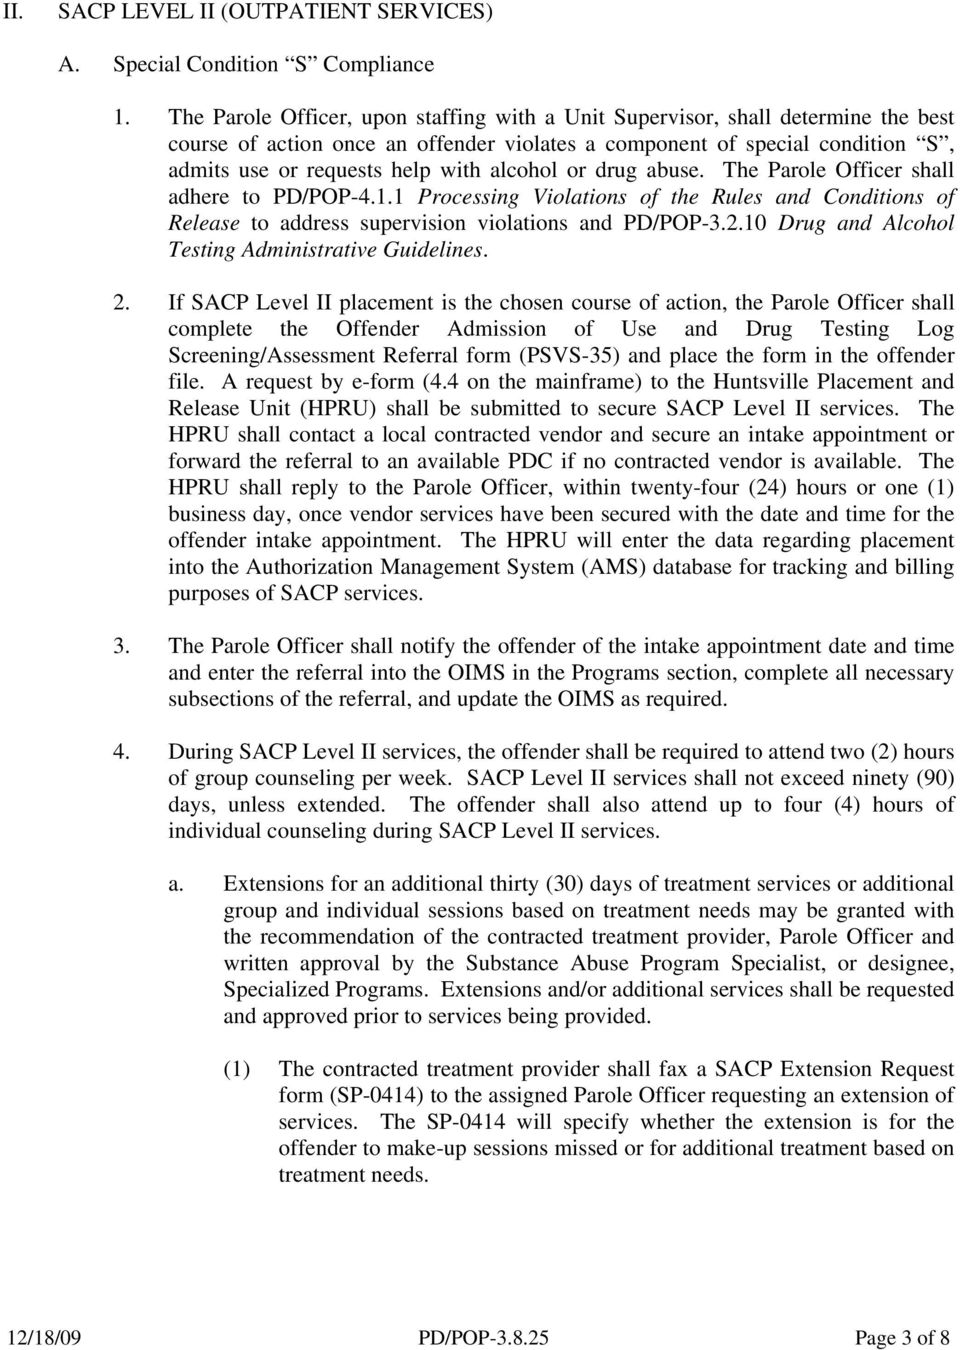 alcohol or drug abuse. The Parole Officer shall adhere to PD/POP-4.1.1 Processing Violations of the Rules and Conditions of Release to address supervision violations and PD/POP-3.2.